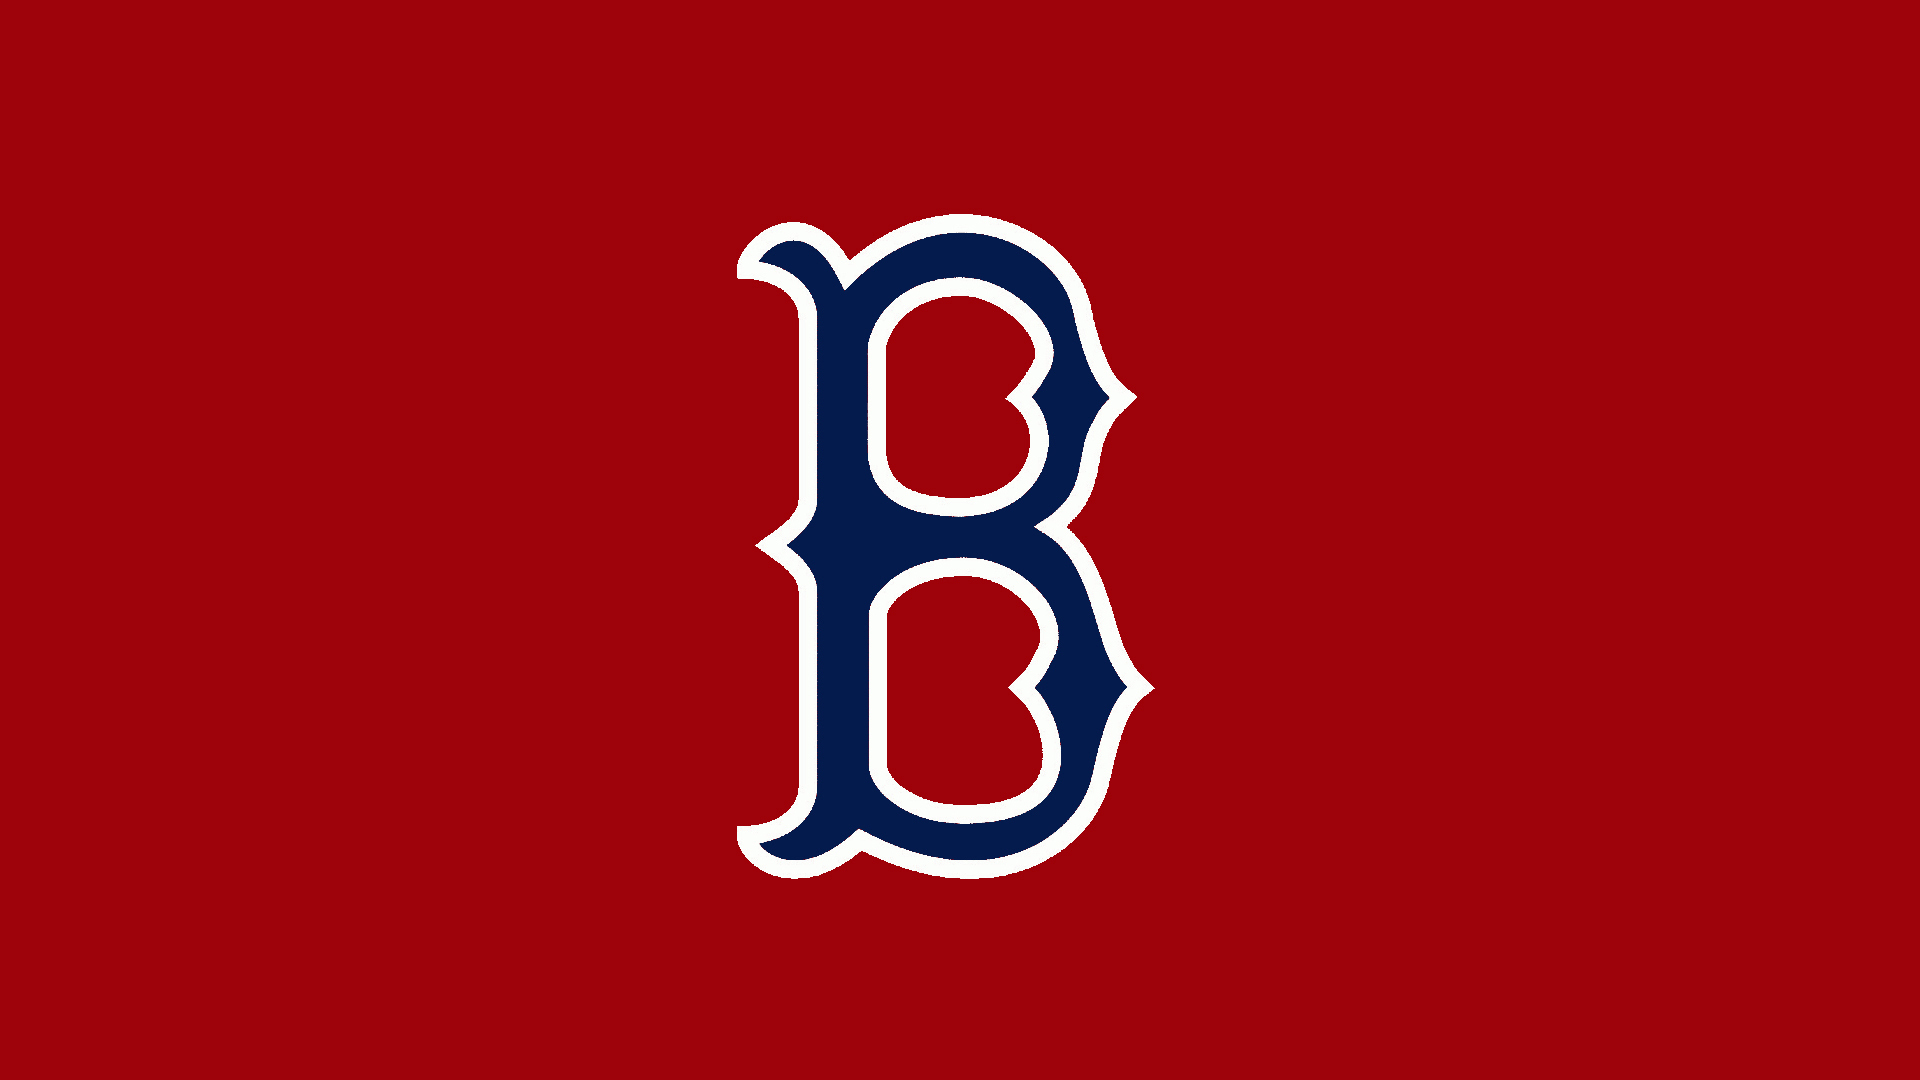 Red Sox Background